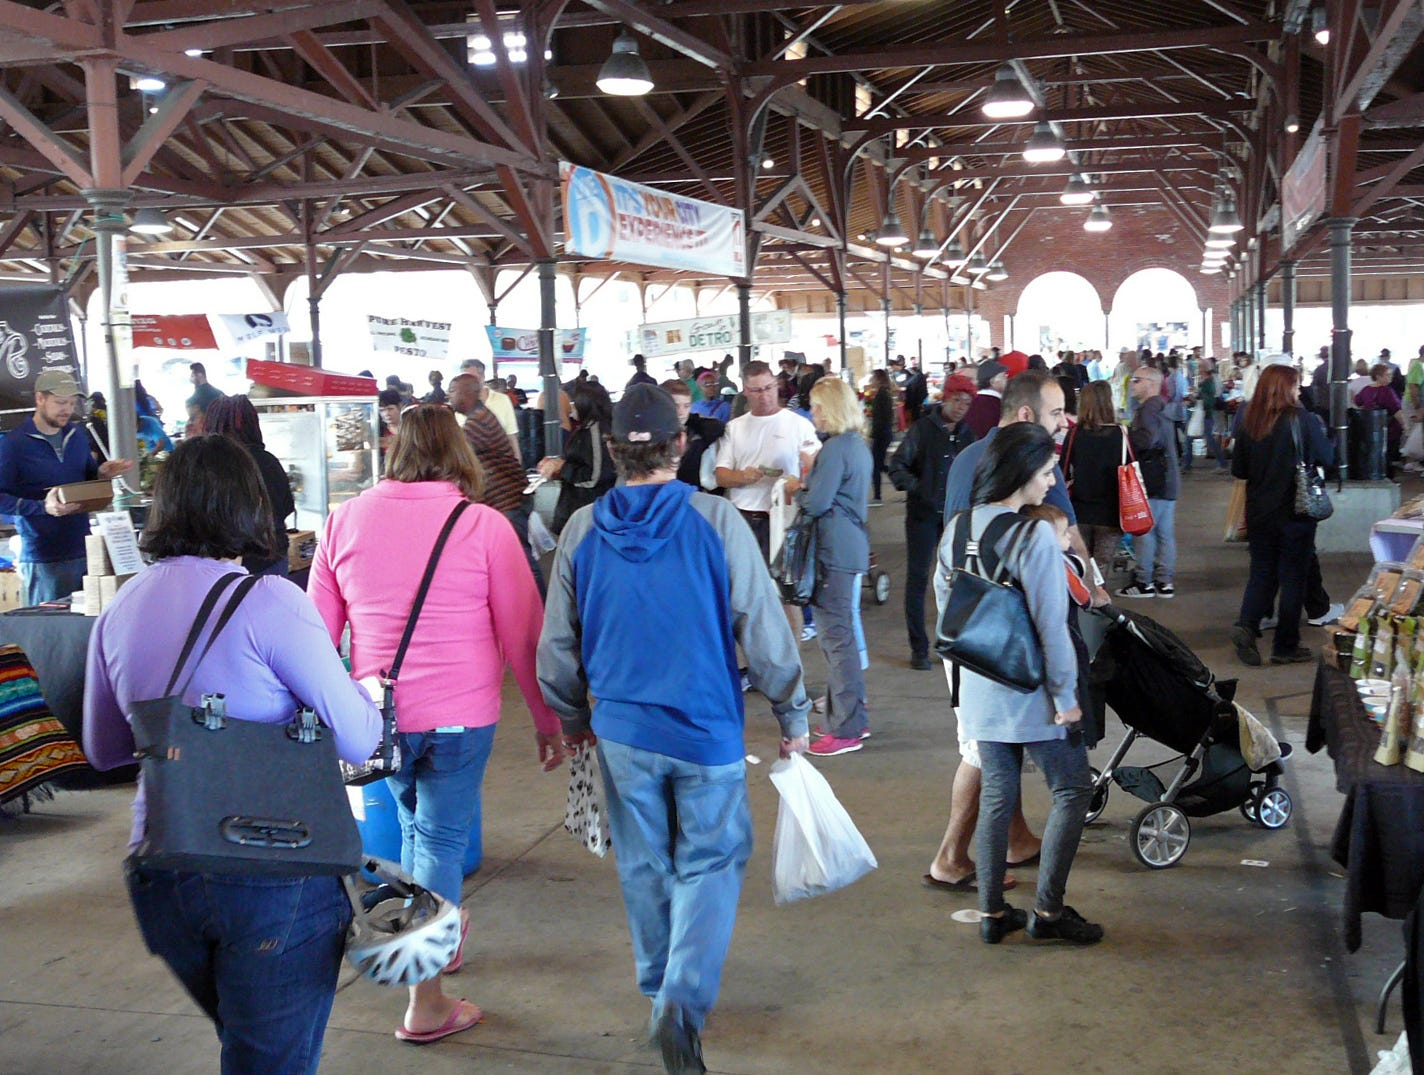 Detroit's Eastern Market is open Saturdays year round.